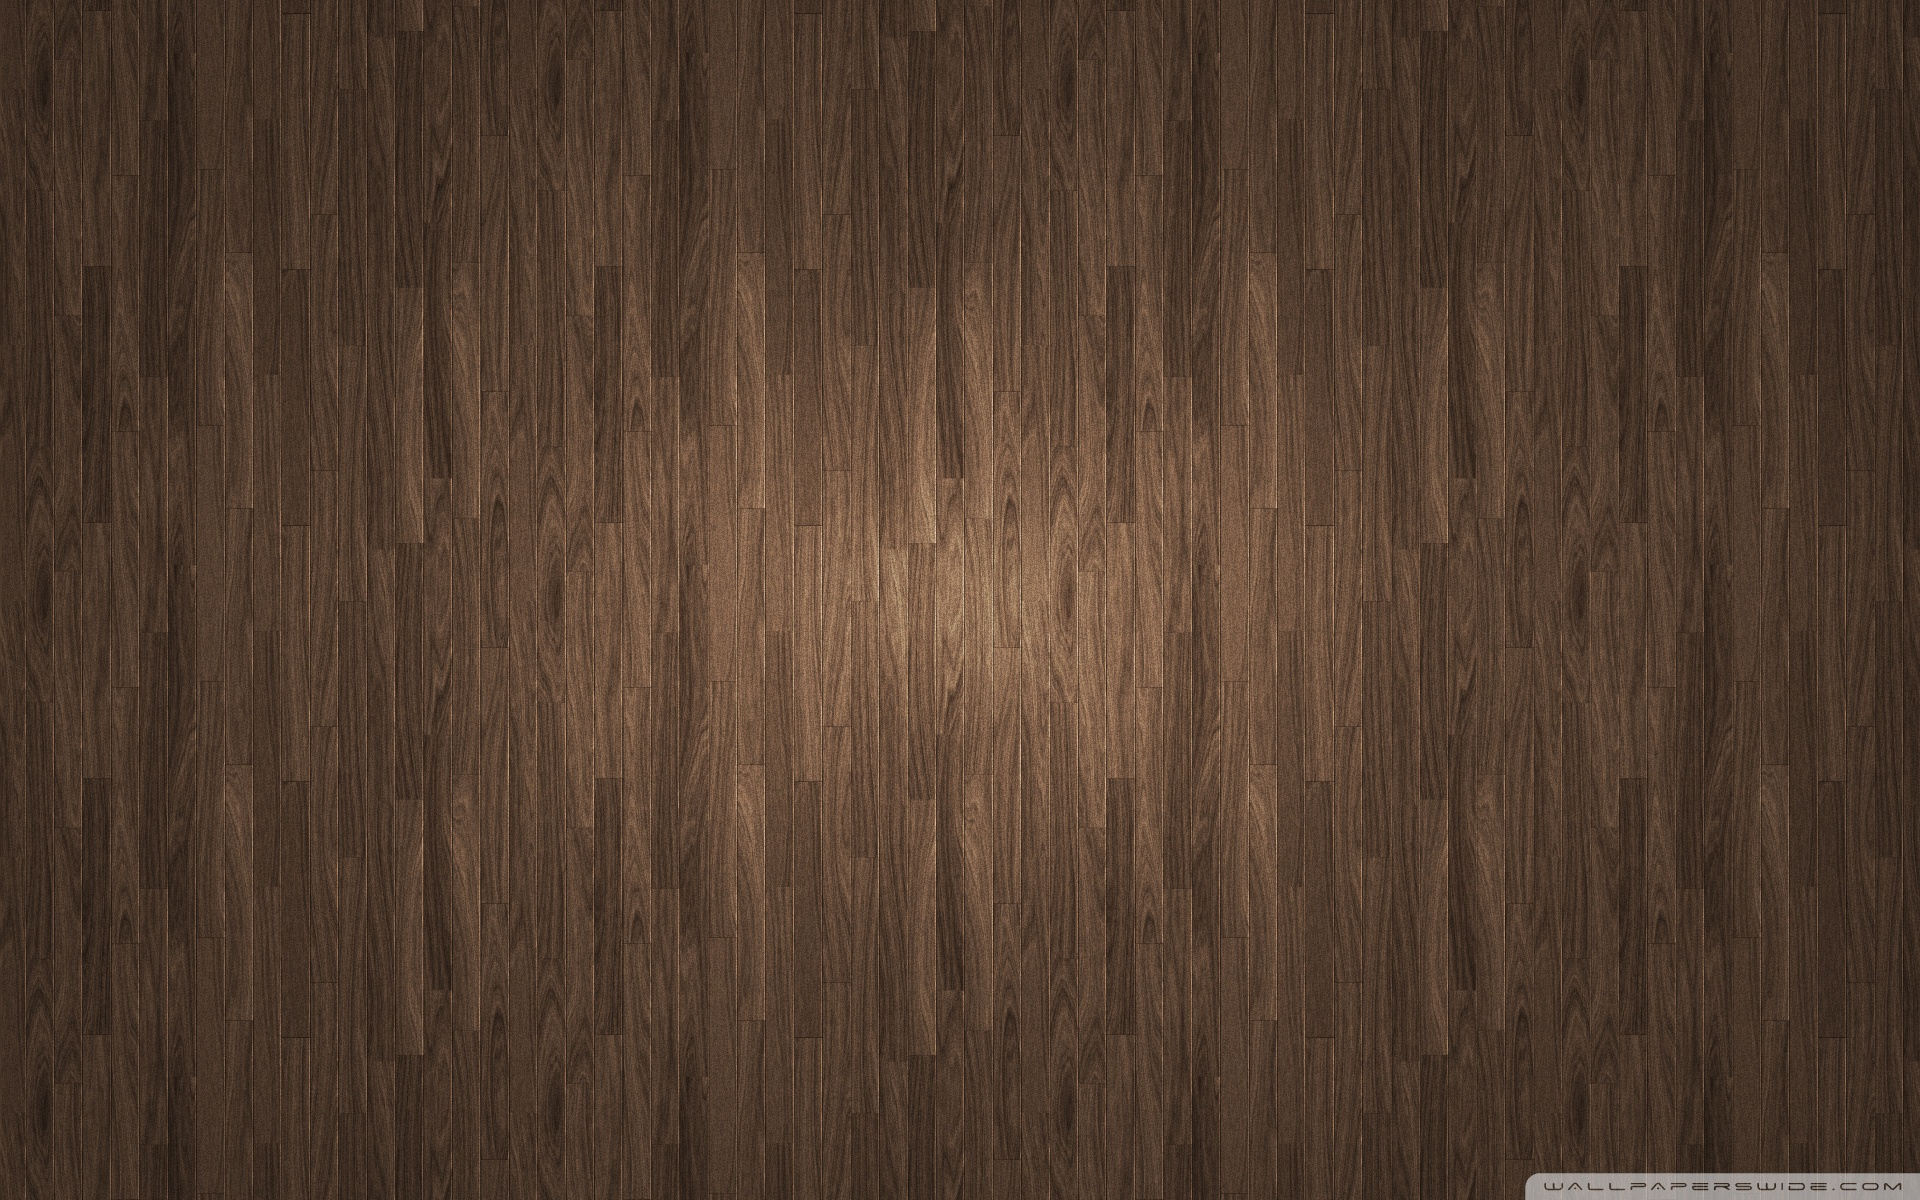 Wood Background ❤ 4K HD Desktop Wallpaper for 4K Ultra HD TV ...